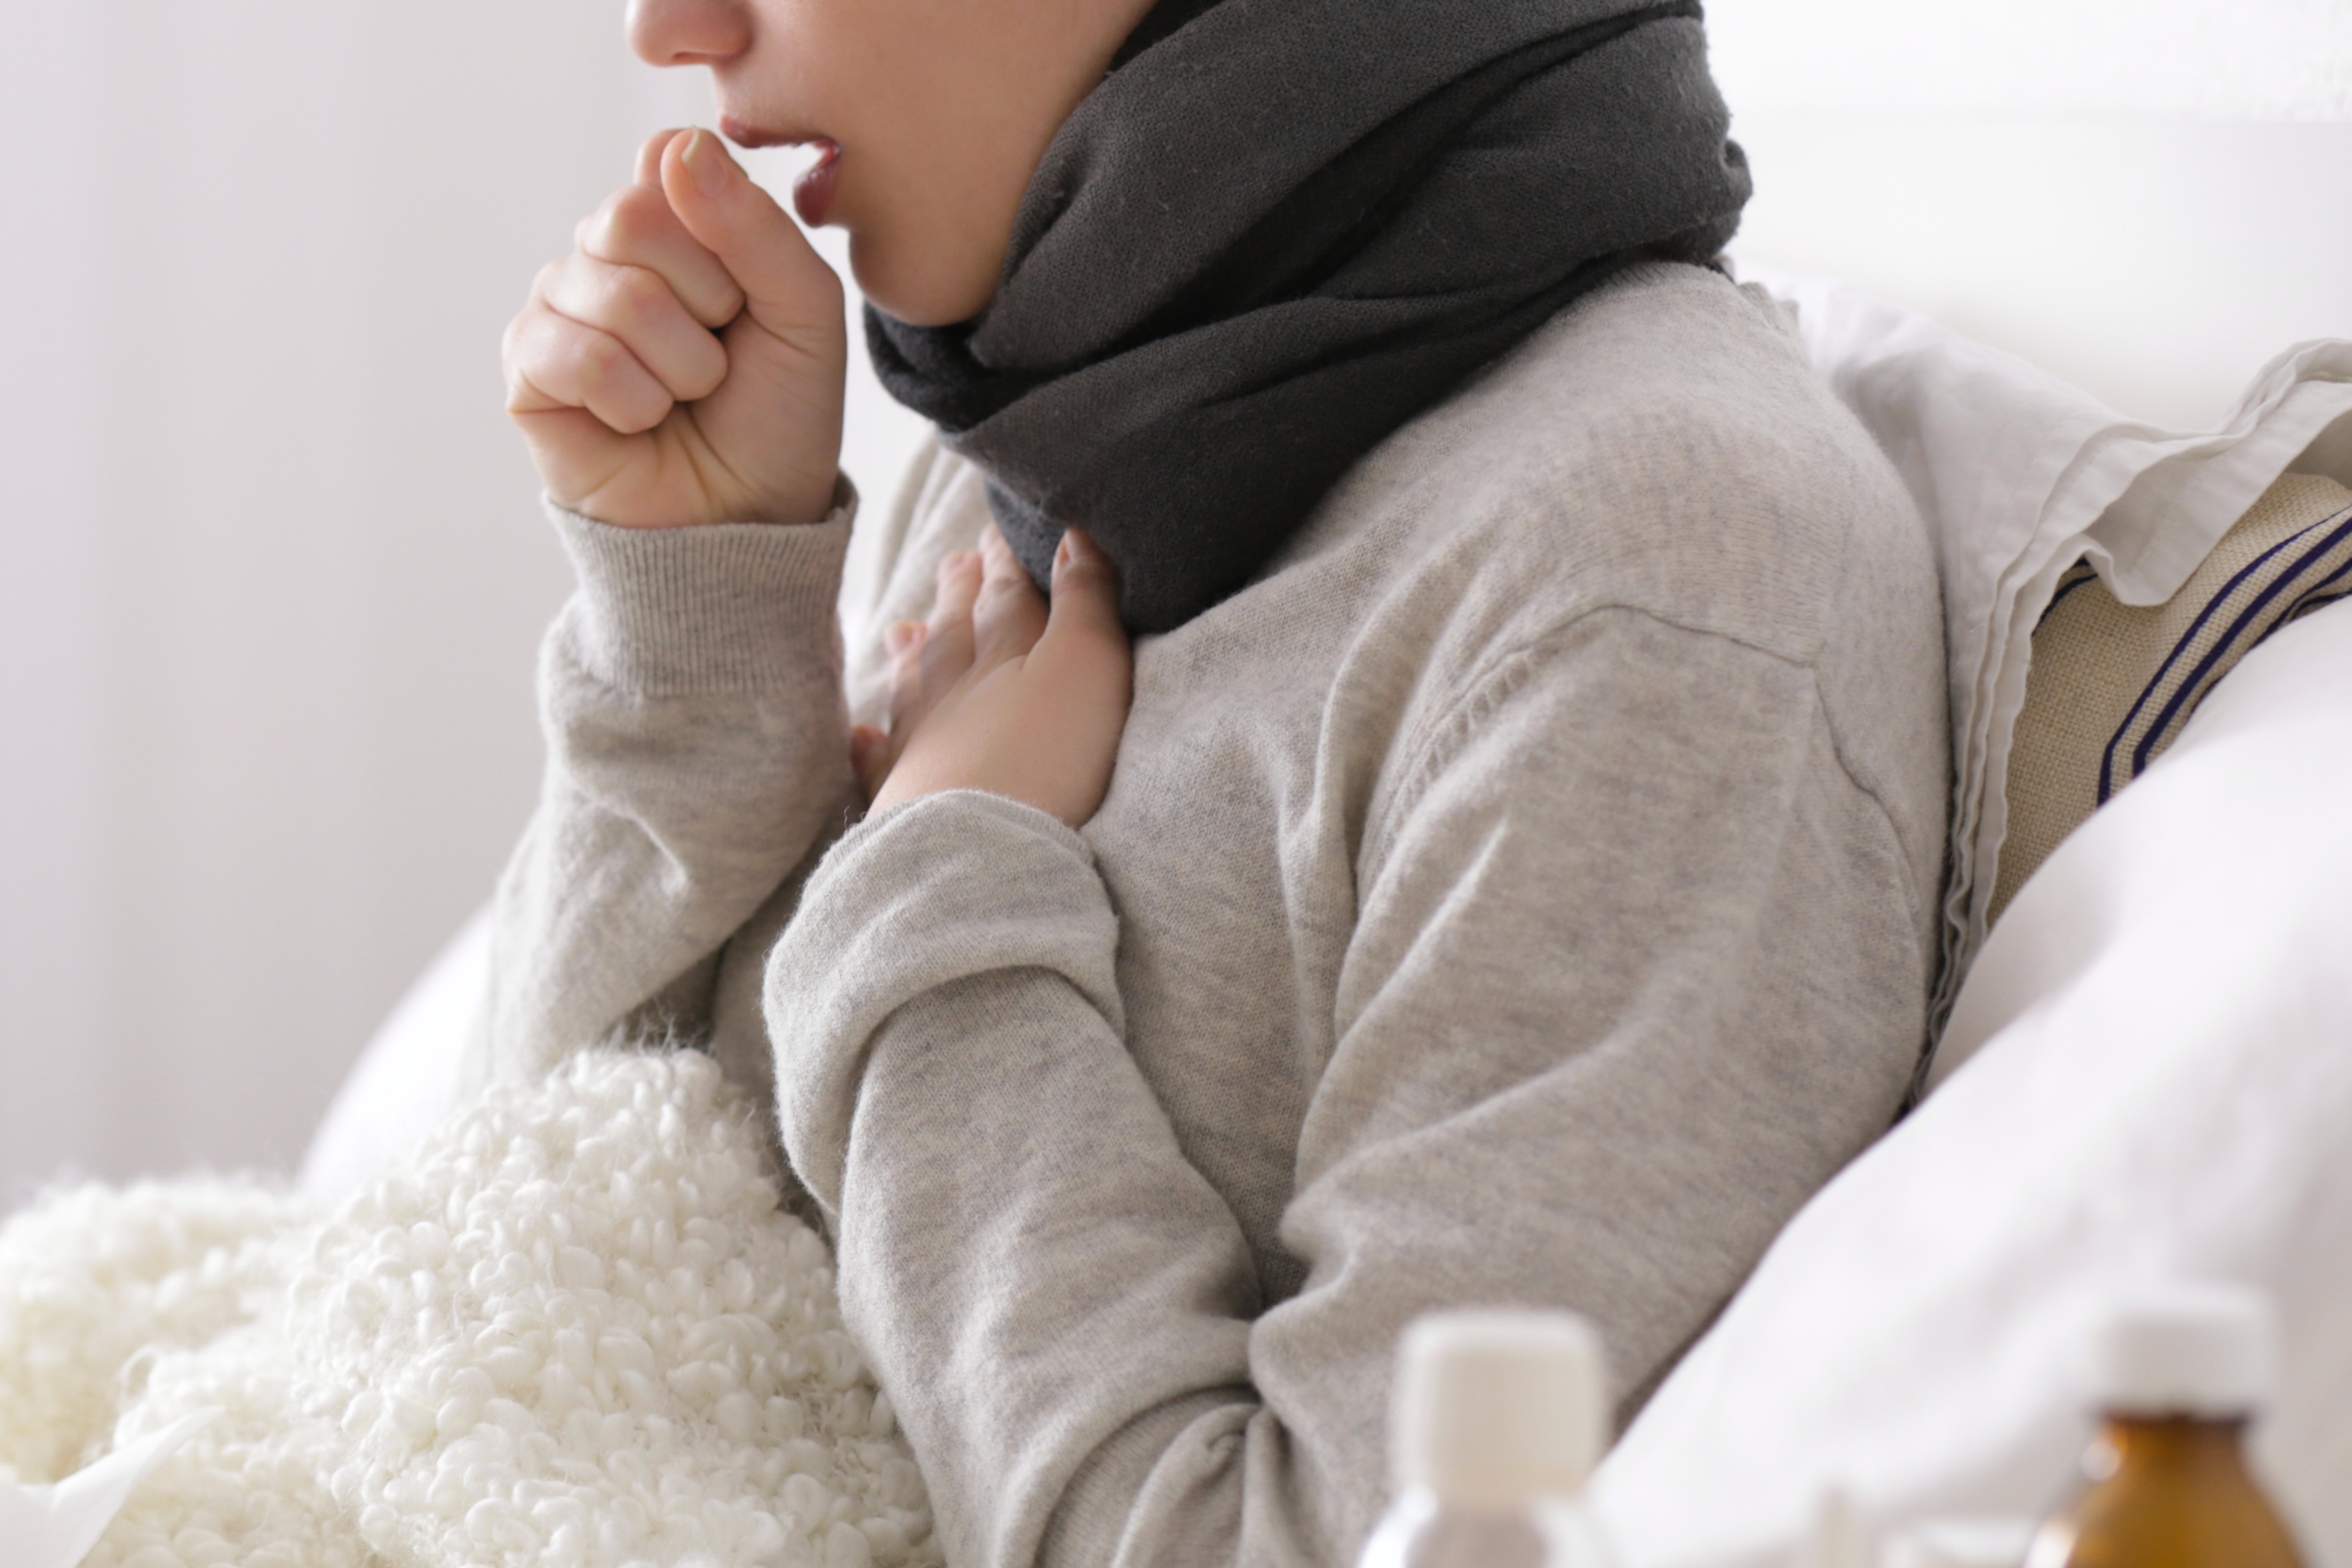 An image depicting a person suffering from Bronchitis symptoms